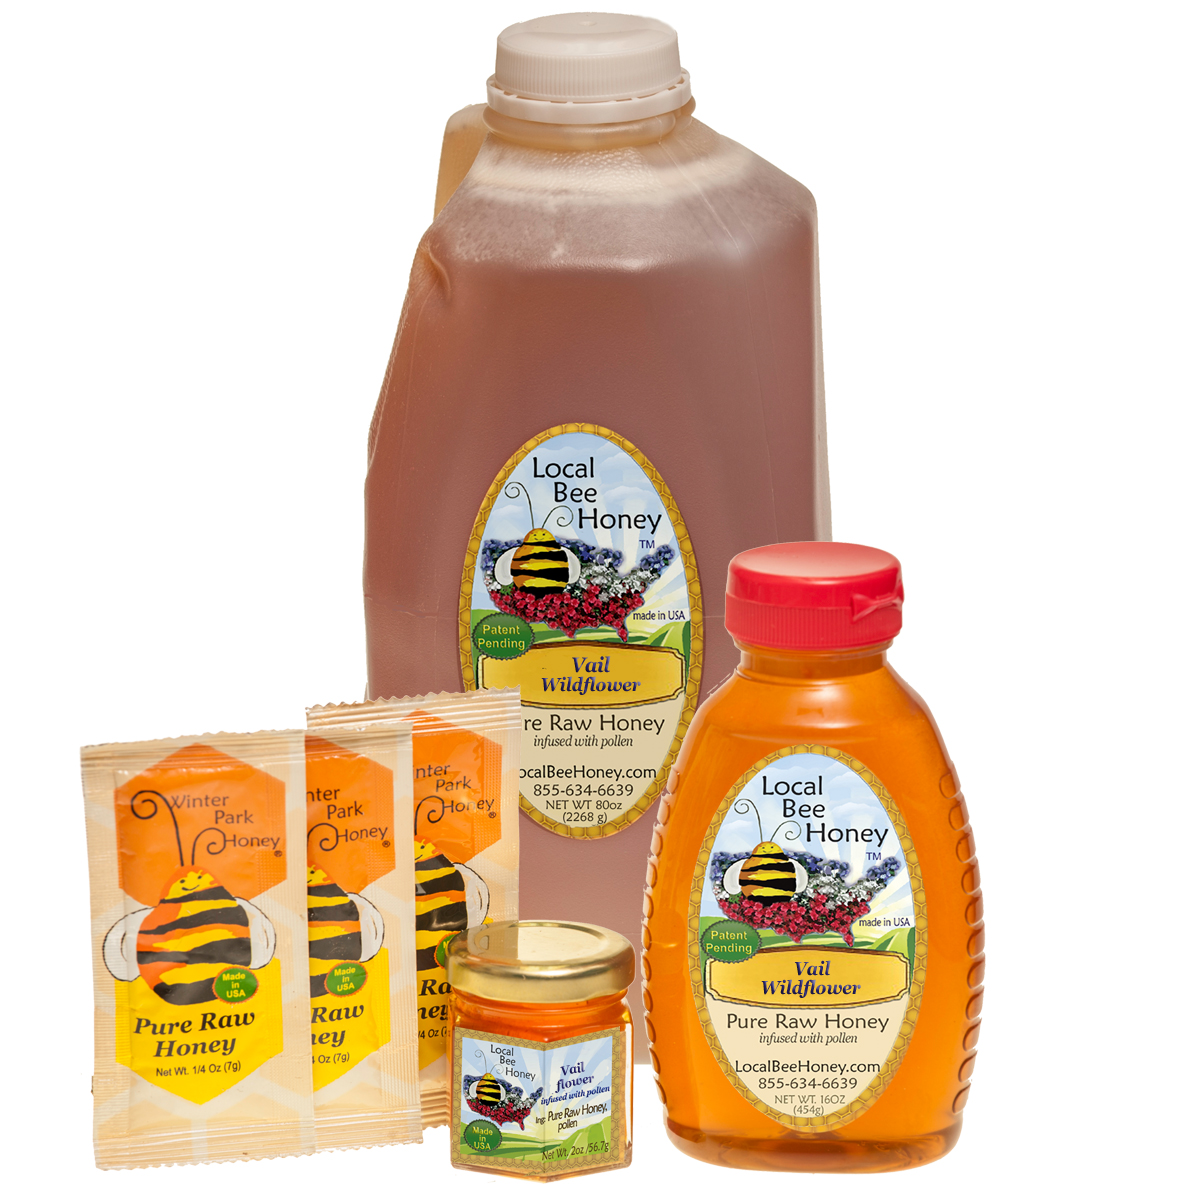 Pure raw vail wildflower honey in several different sized containers